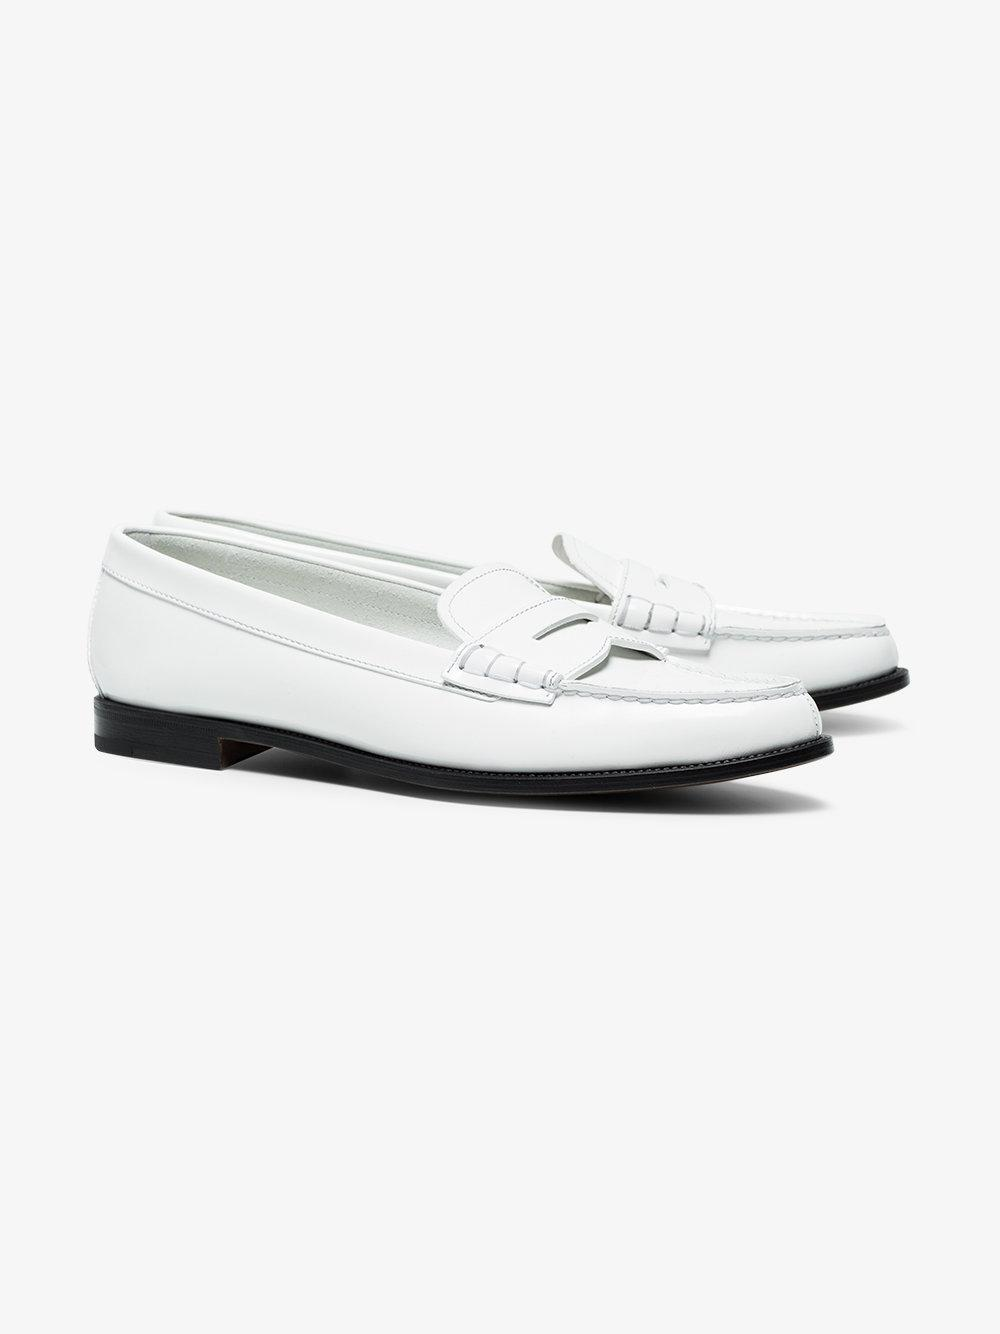 Kara Glossed-leather Loafers - White Churchs 8S6gN